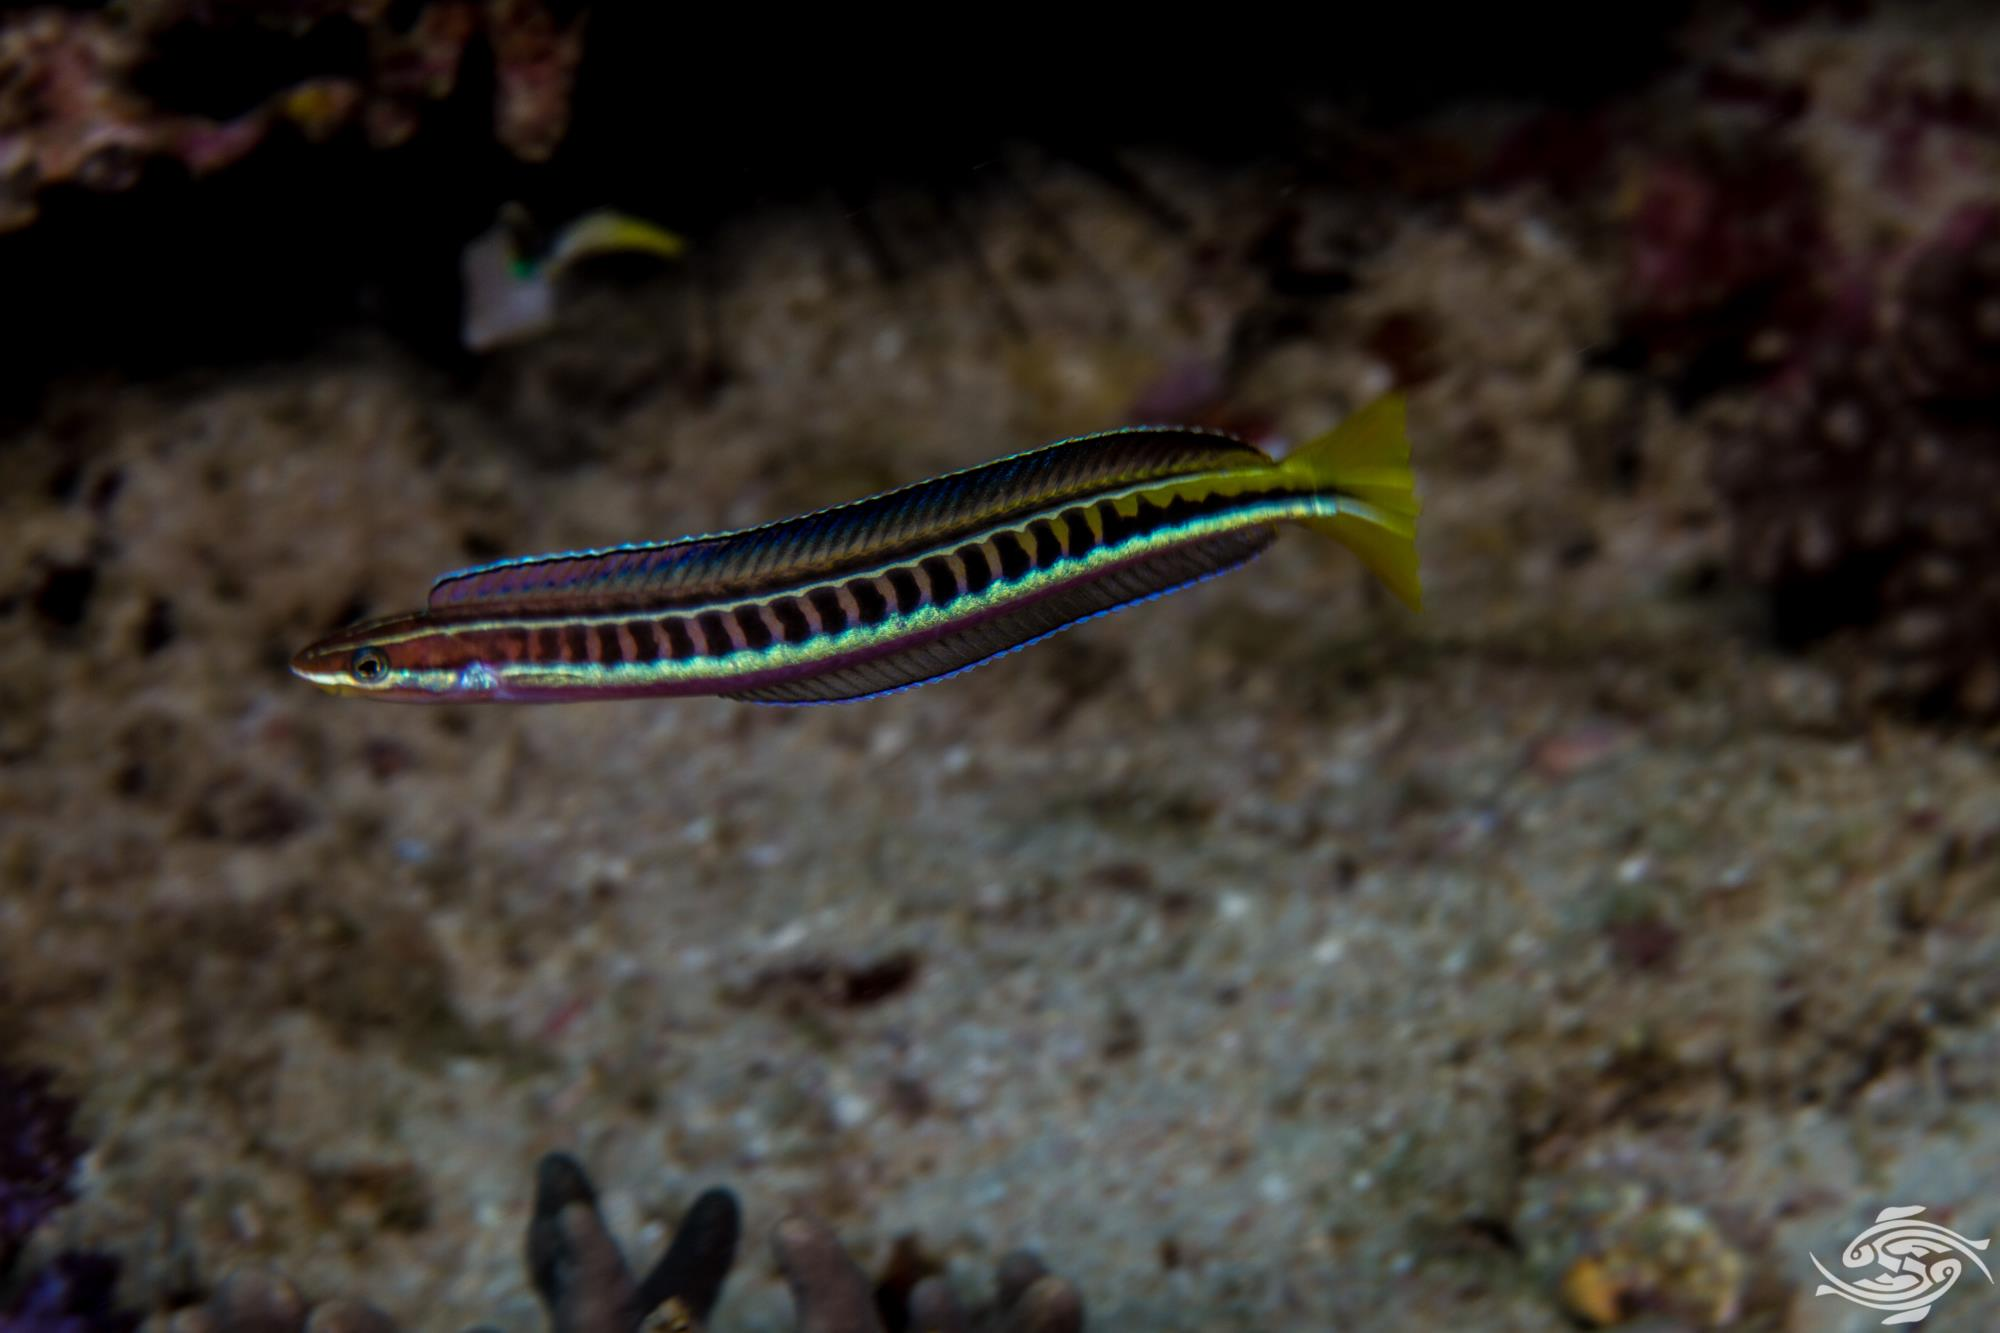 Piano Fangblenny (Plagiotremus tapeinosoma) is also known as the Hit and Run Blenny, Mimic Blenny and Scale-eating Fangblenny